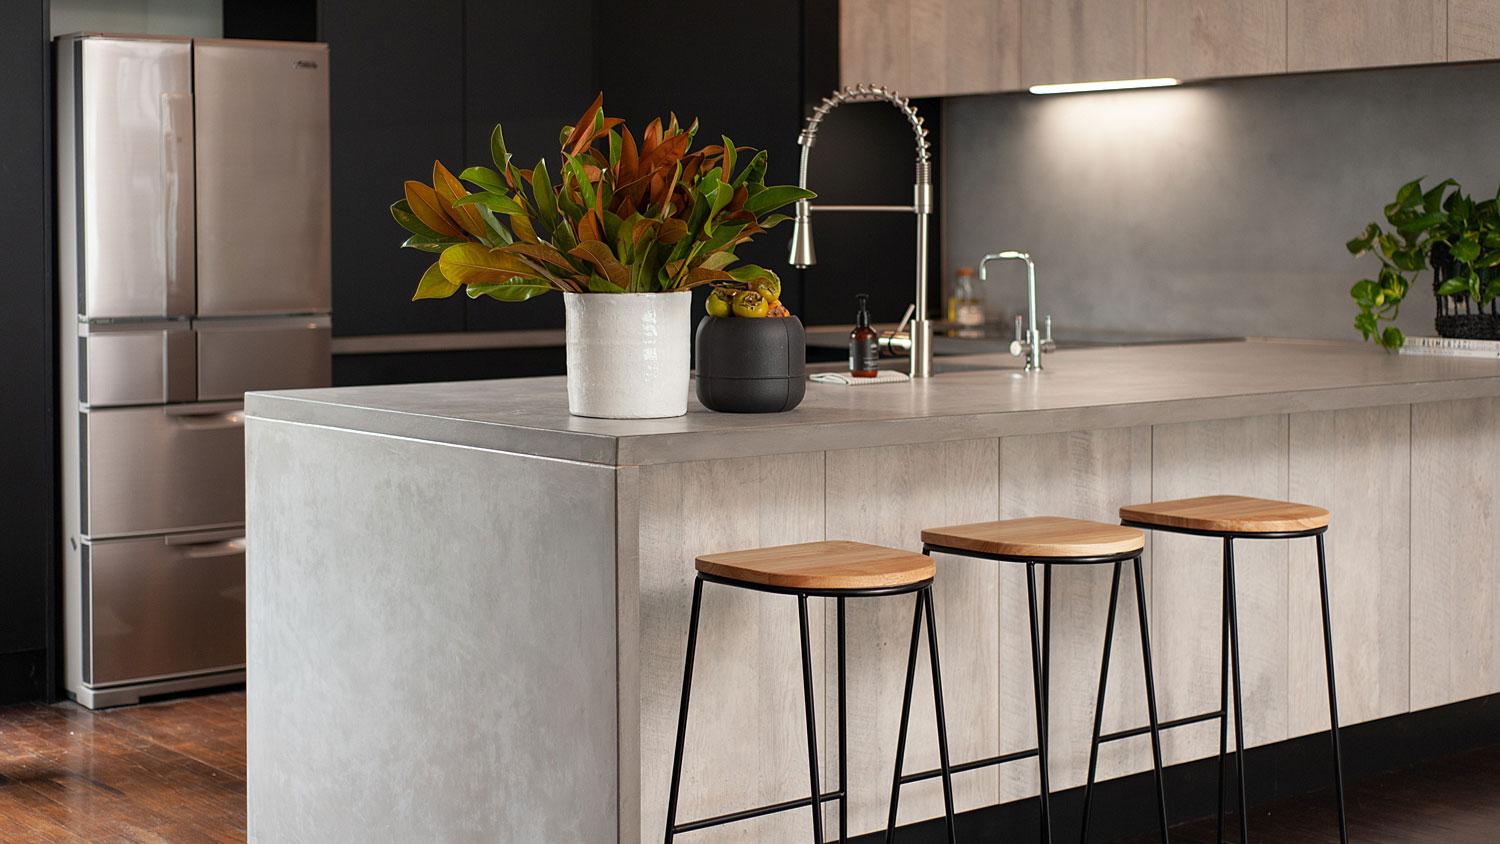 Zesta-Kitchens_HEADER-IMAGE